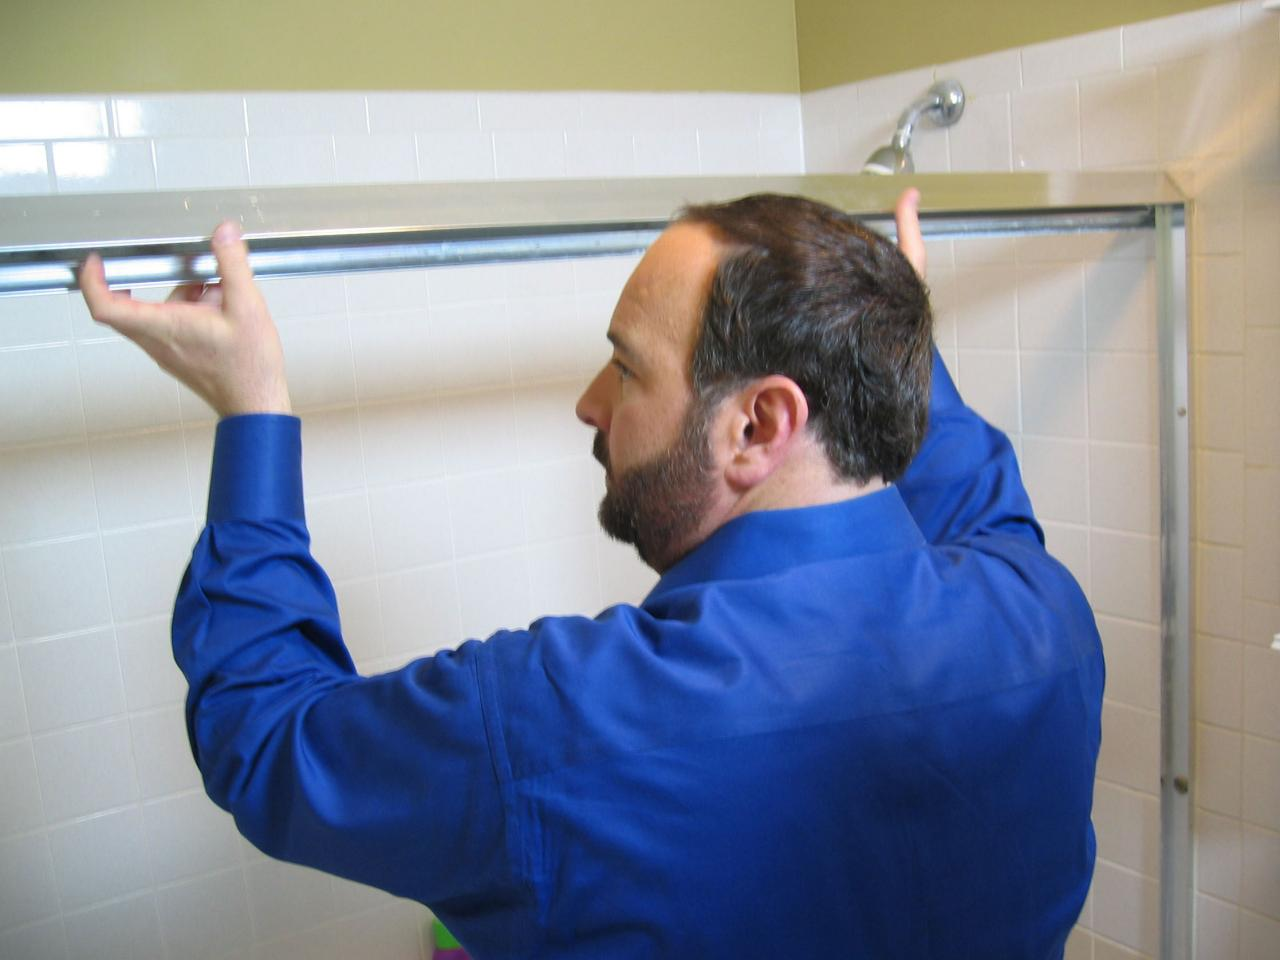 How to Replace a Shower Door | how-tos | DIY